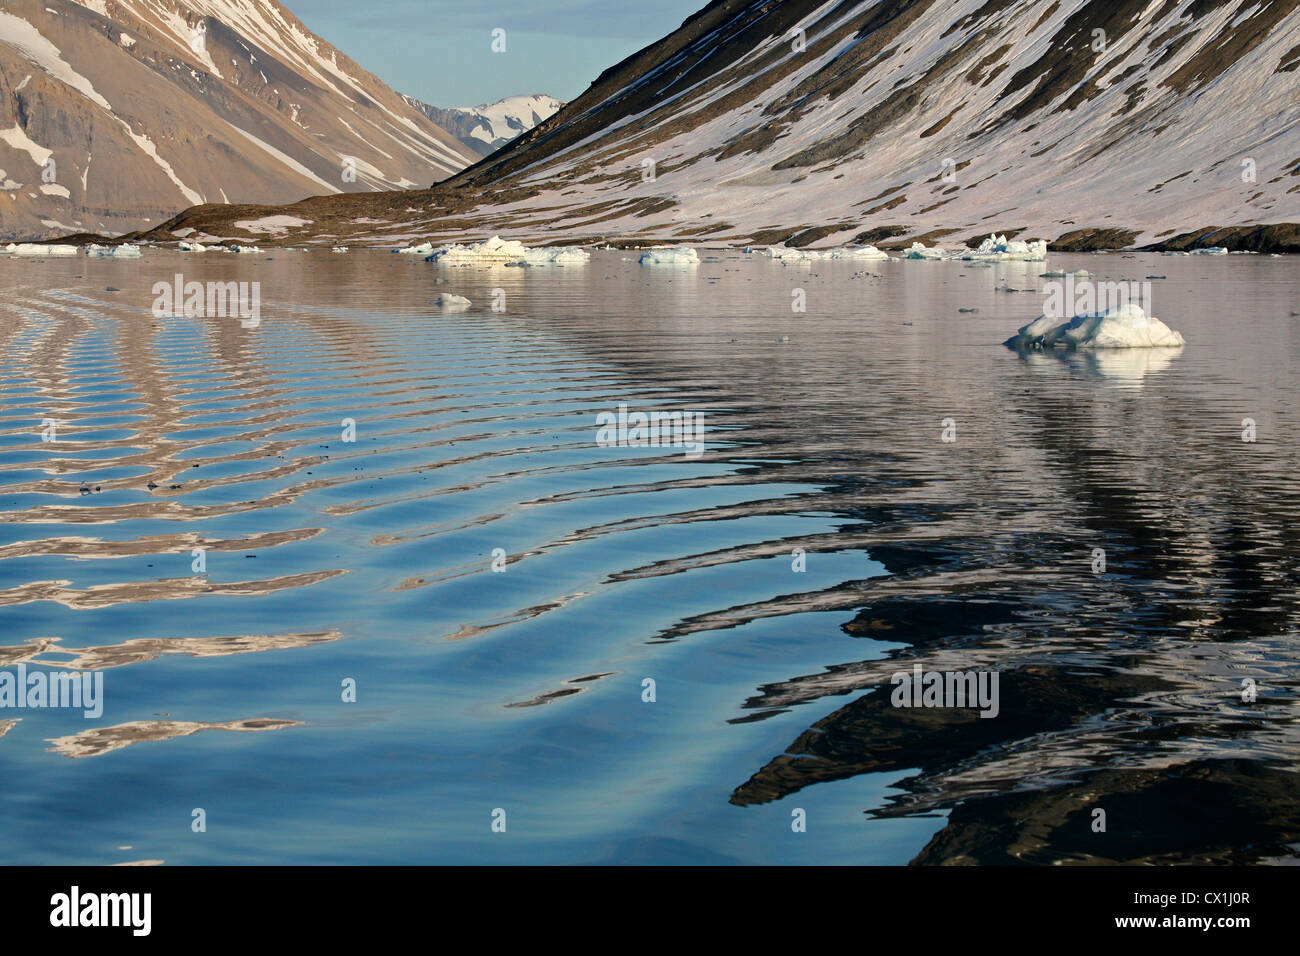 Water ripples in wake of sailing ship and view over mountains and sea at Svalbard, Spitsbergen, Norway - Stock Image